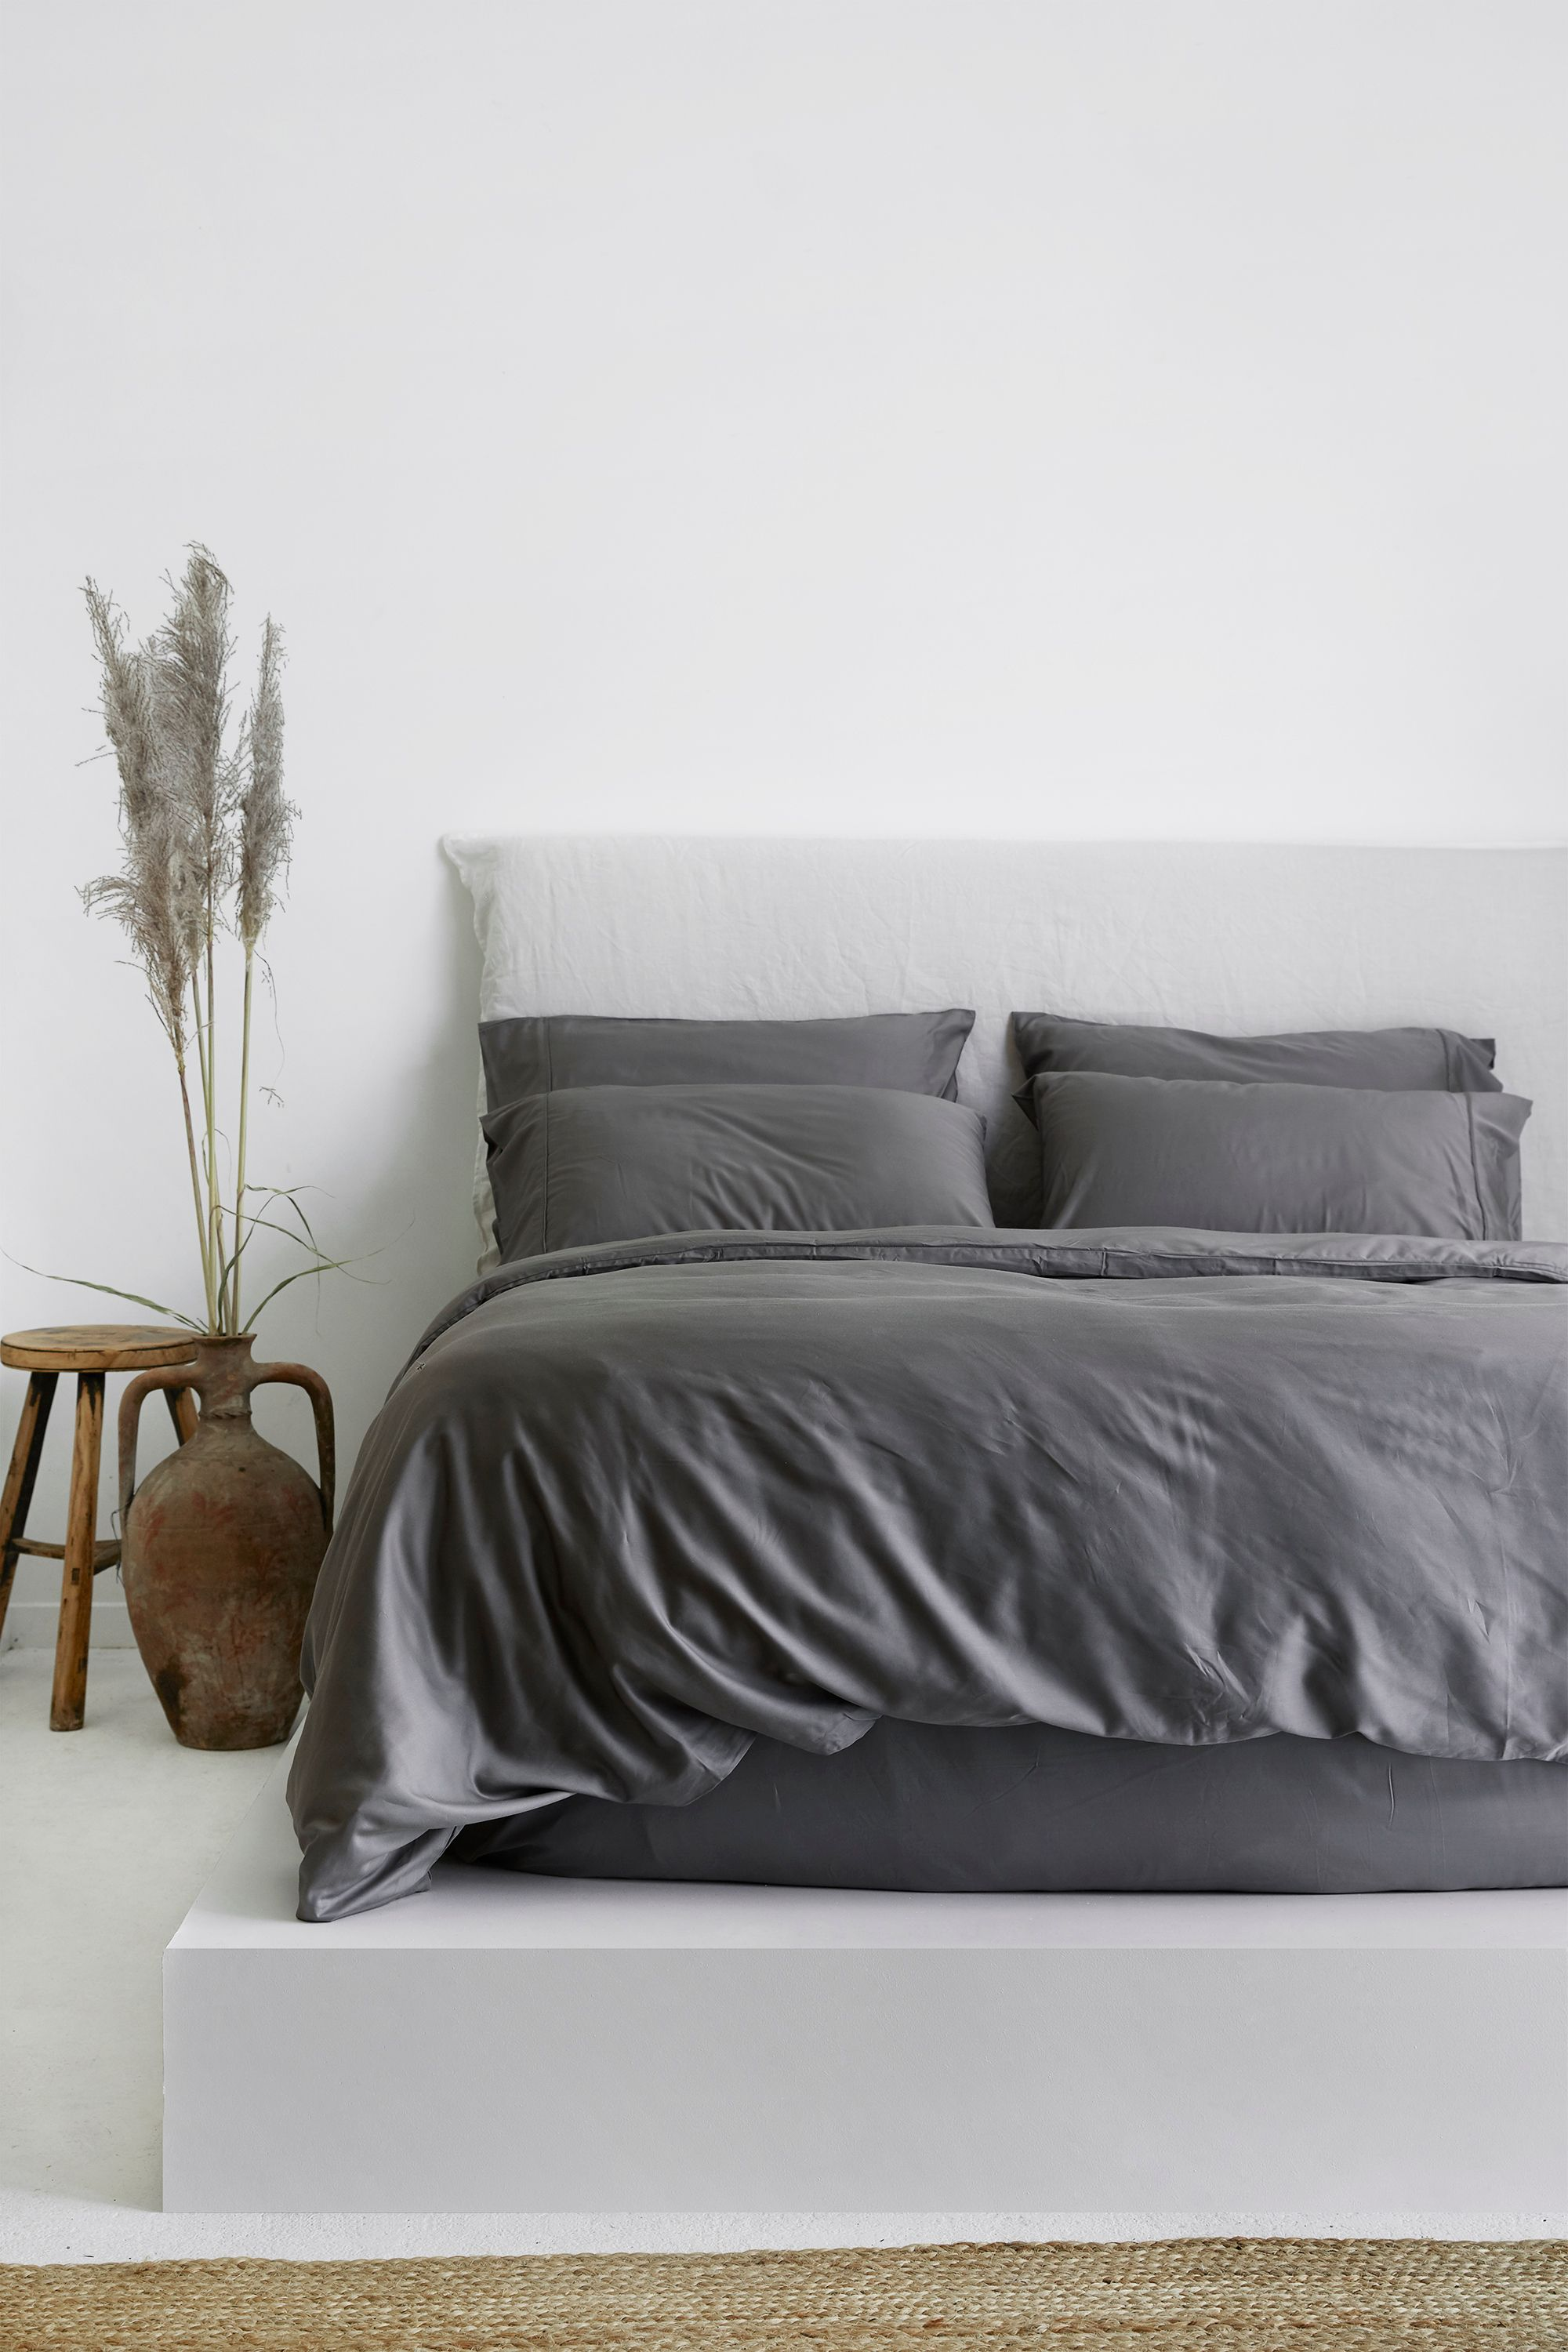 Effortless Styling Done Right With Our Warm Grey Quilt Cover All In Our 100 Pure French Fla Bed Linens Luxury Luxury Bed Linen Duvet Covers Neutral Bed Linen